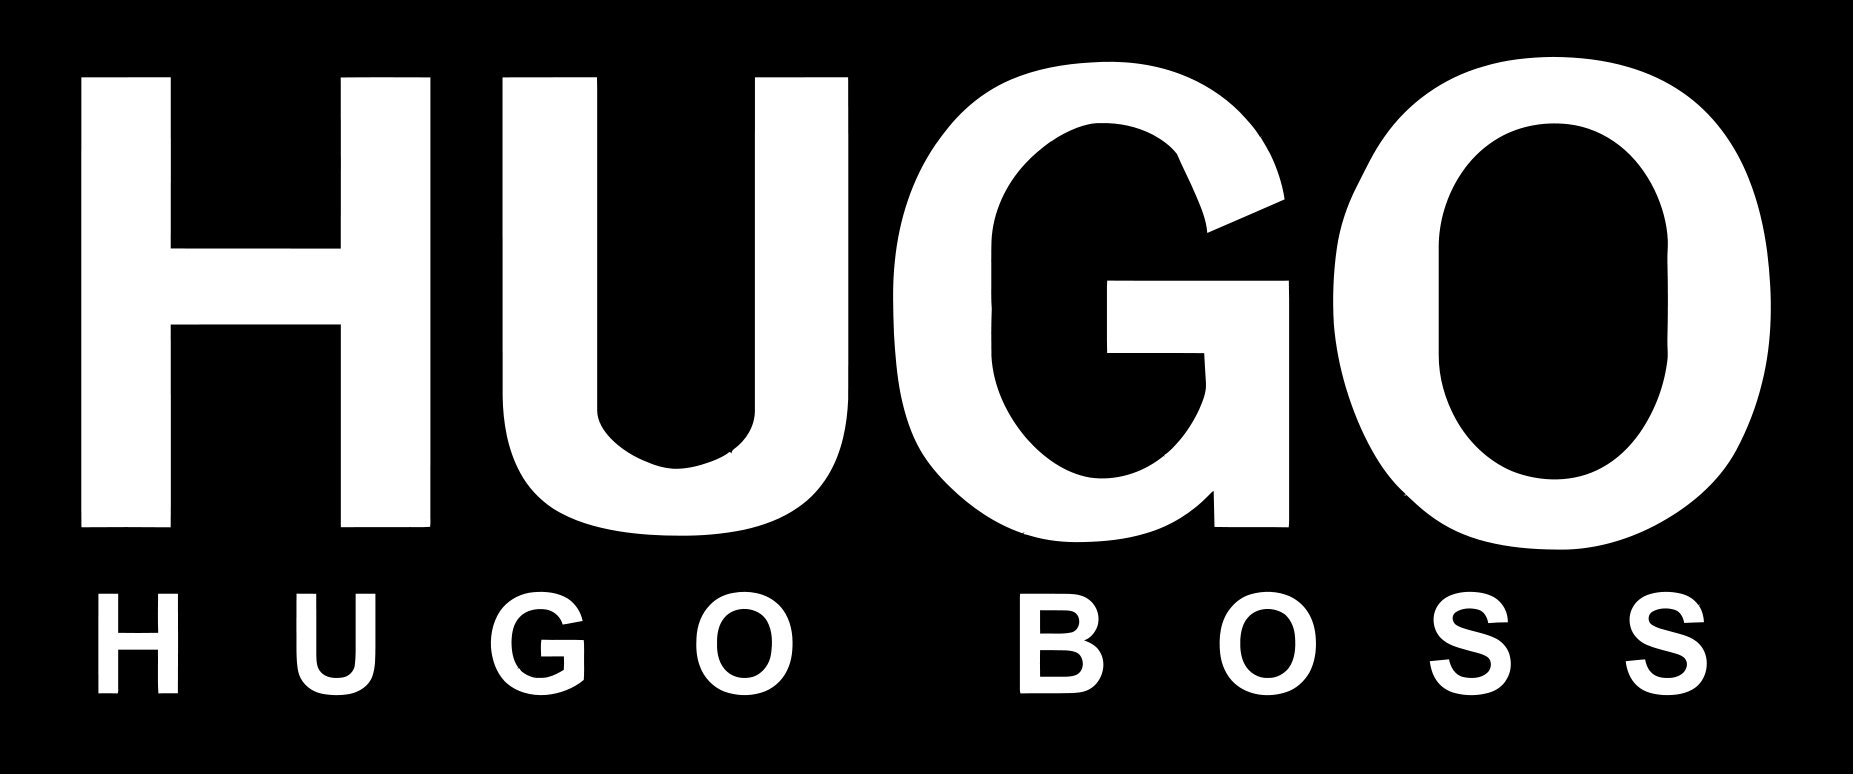 hugo boss @hugoboss welcome to the official hugo boss twitter account, featuring  the latest global corporate news for all customer service queries please contact .